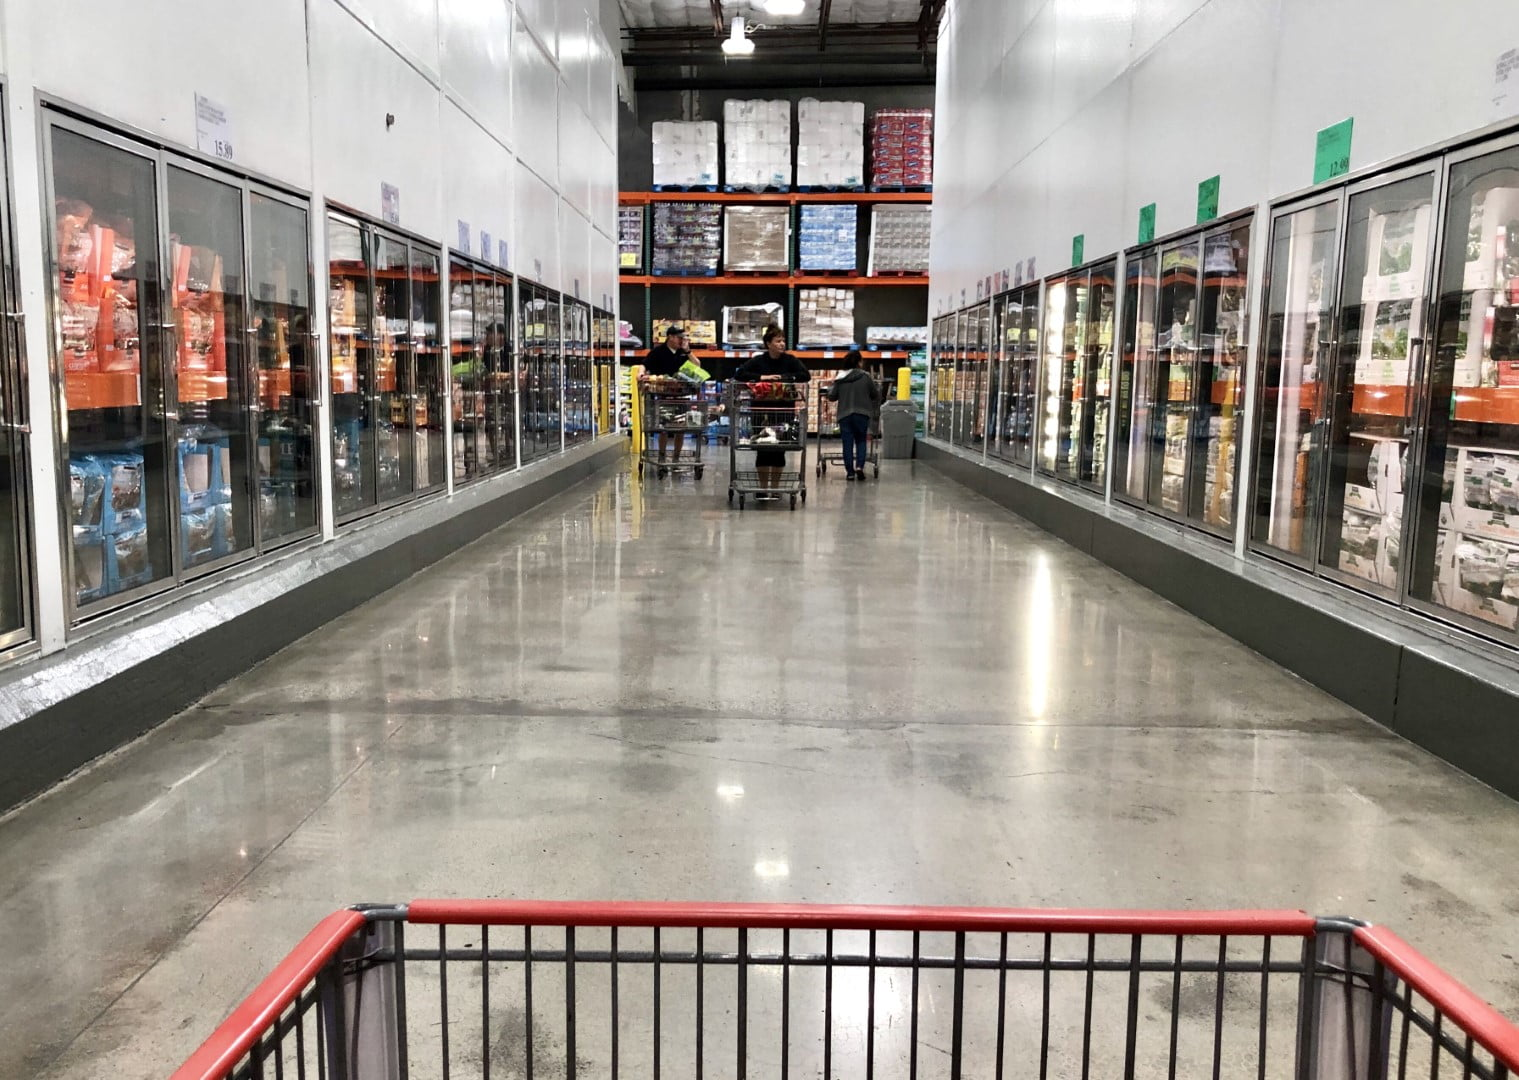 Should You Buy a Costco Membership? - featured image of a costco shopping cart in the store